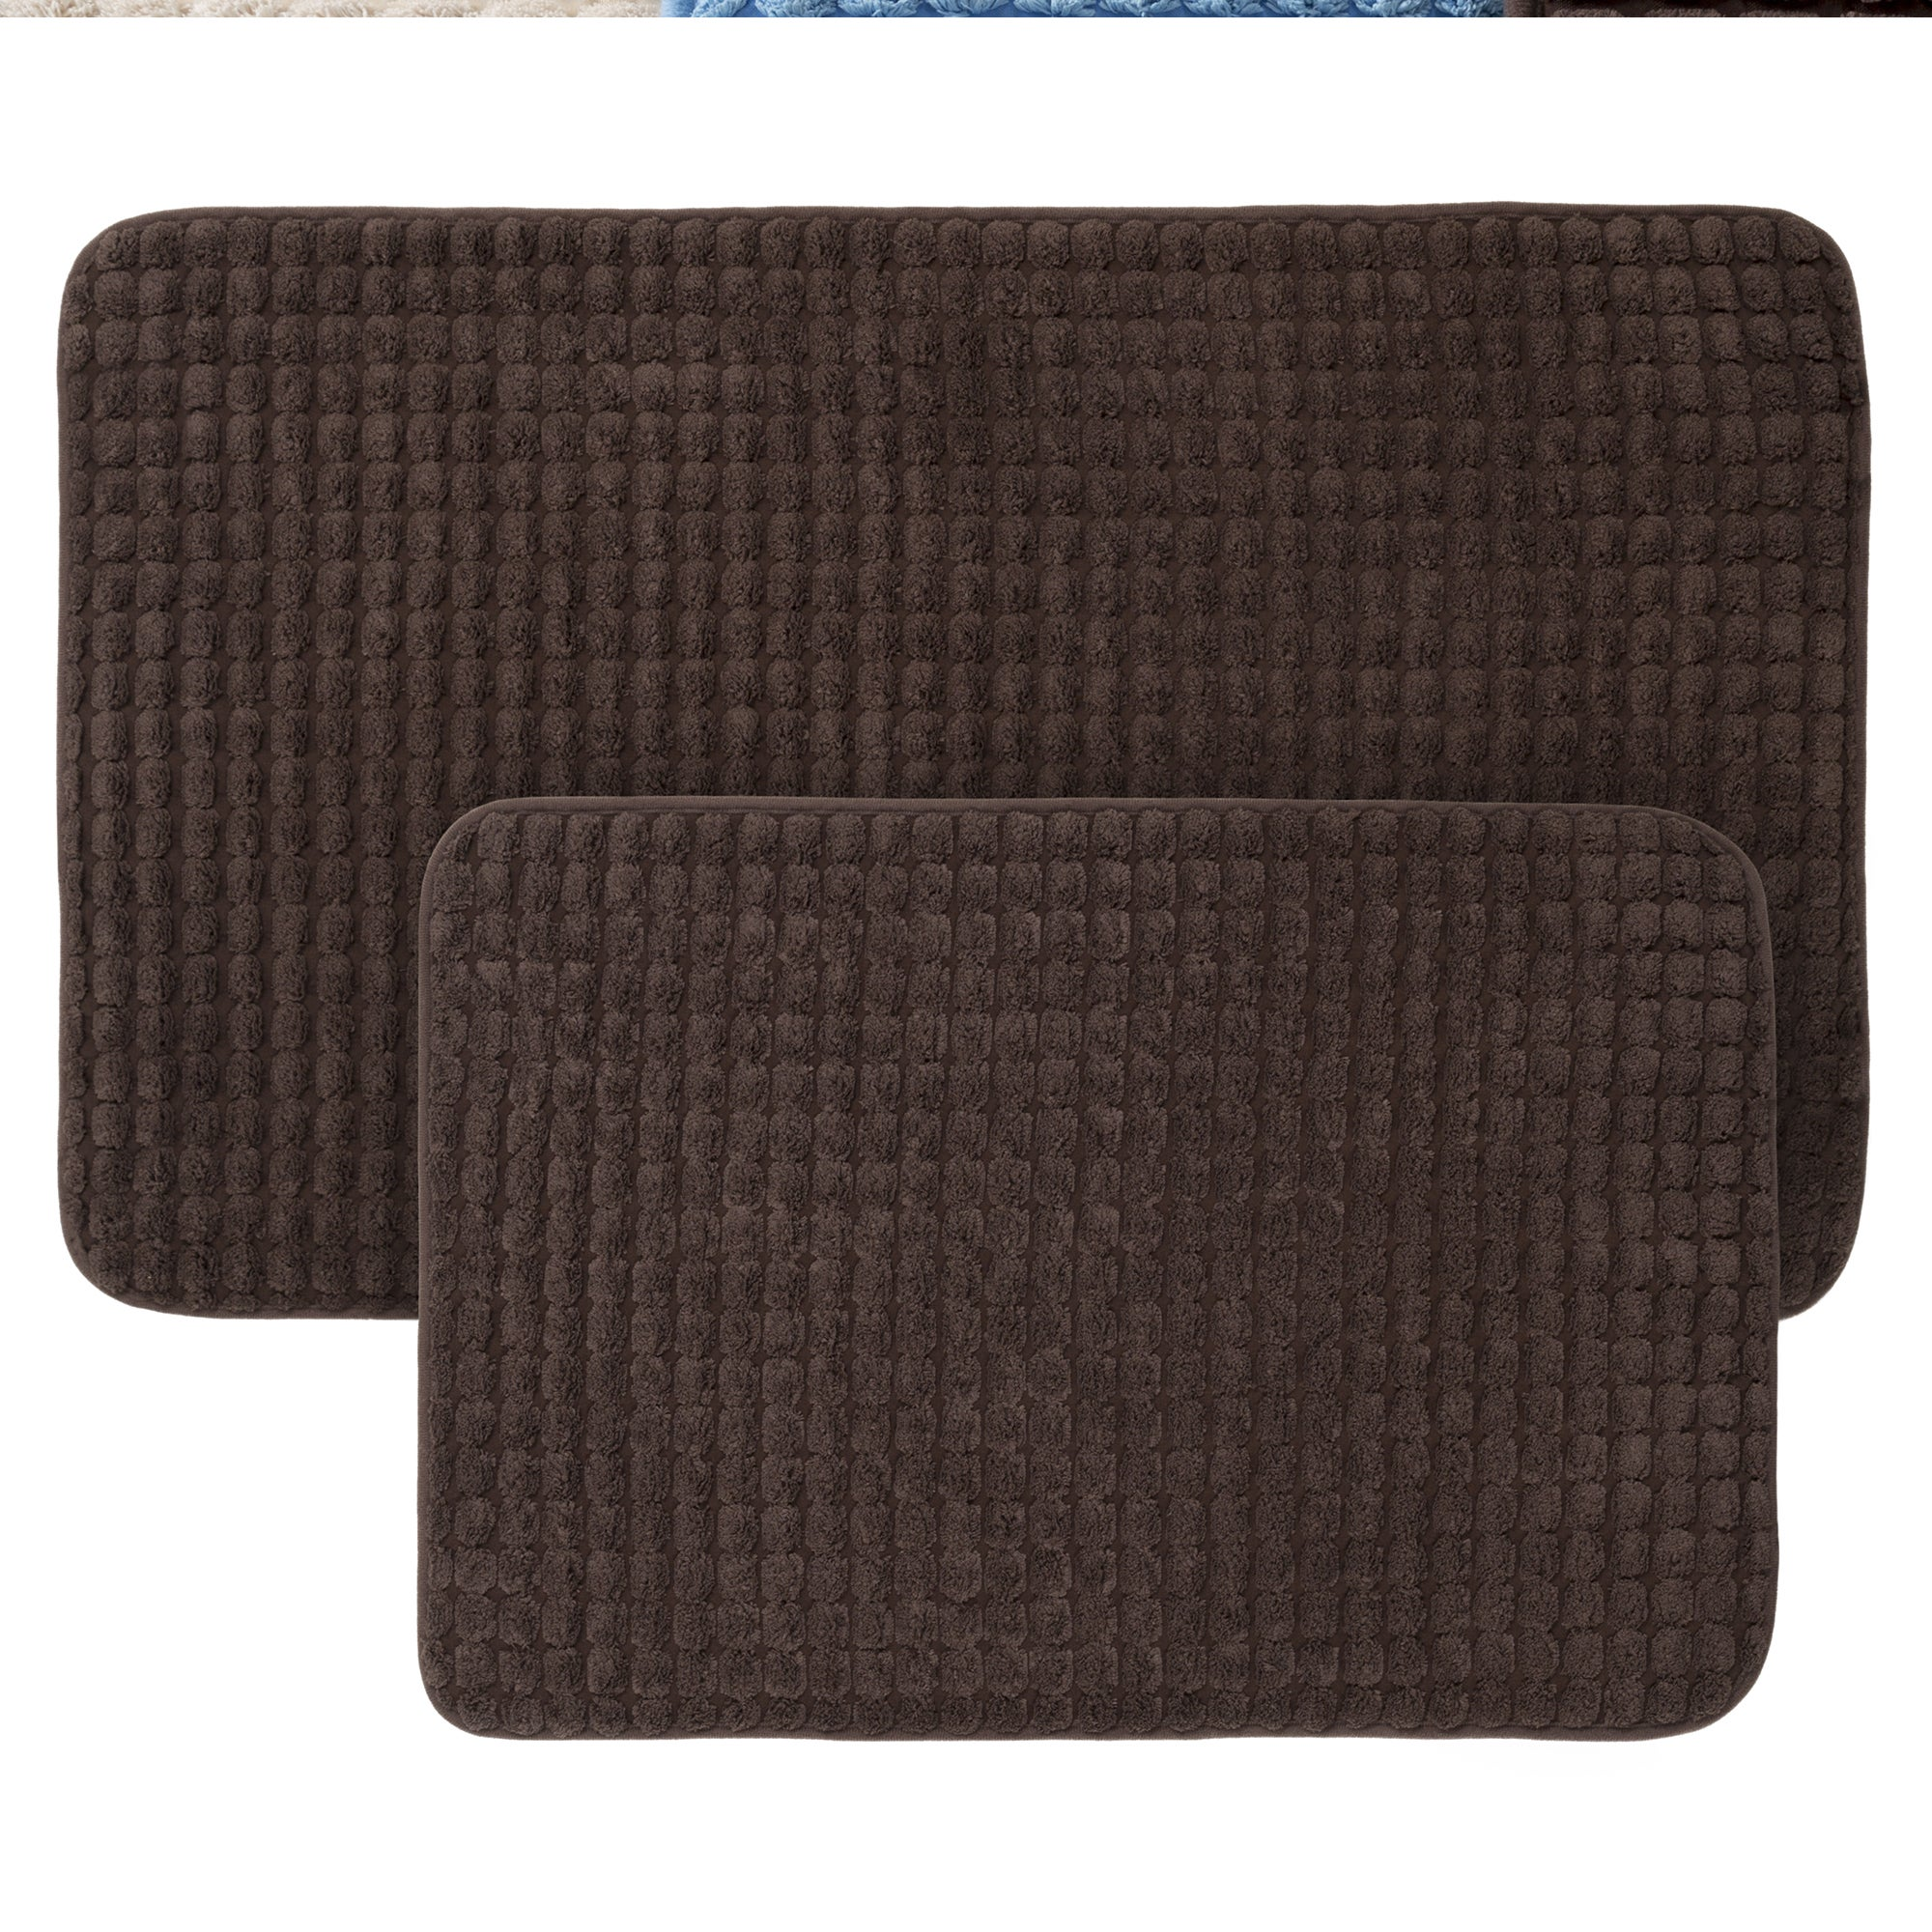 2-Piece Memory Foam Bath Mat Set by Windsor Home (Navy), ...